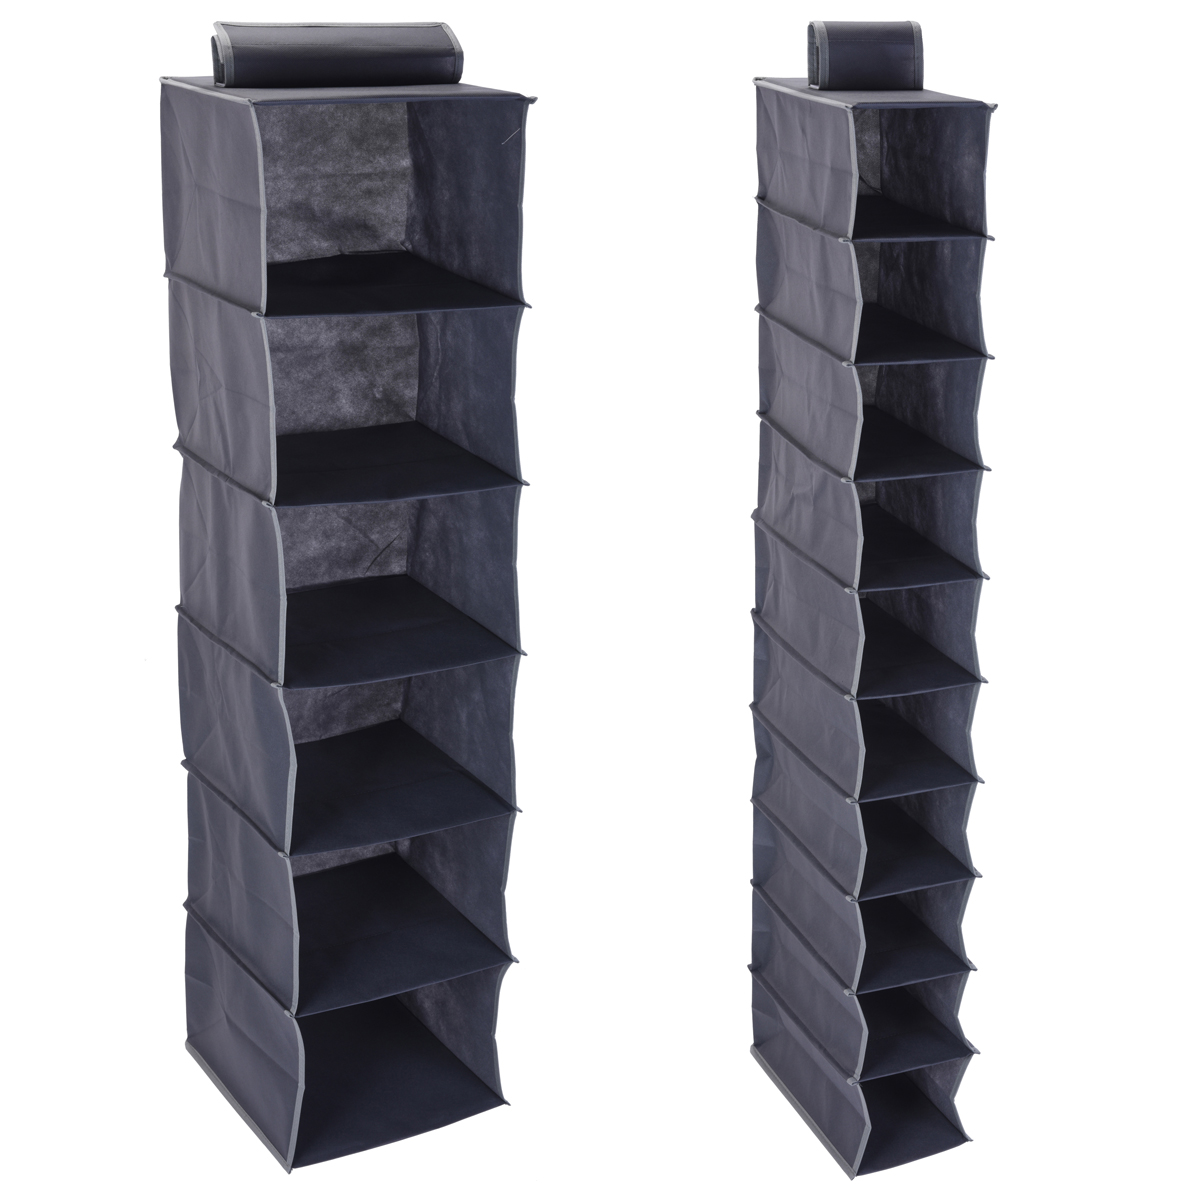 h ngeregal regal 6 10 f cher kleiderschrank stange schuhe kleidung aufbewahrung m bel wohnen. Black Bedroom Furniture Sets. Home Design Ideas